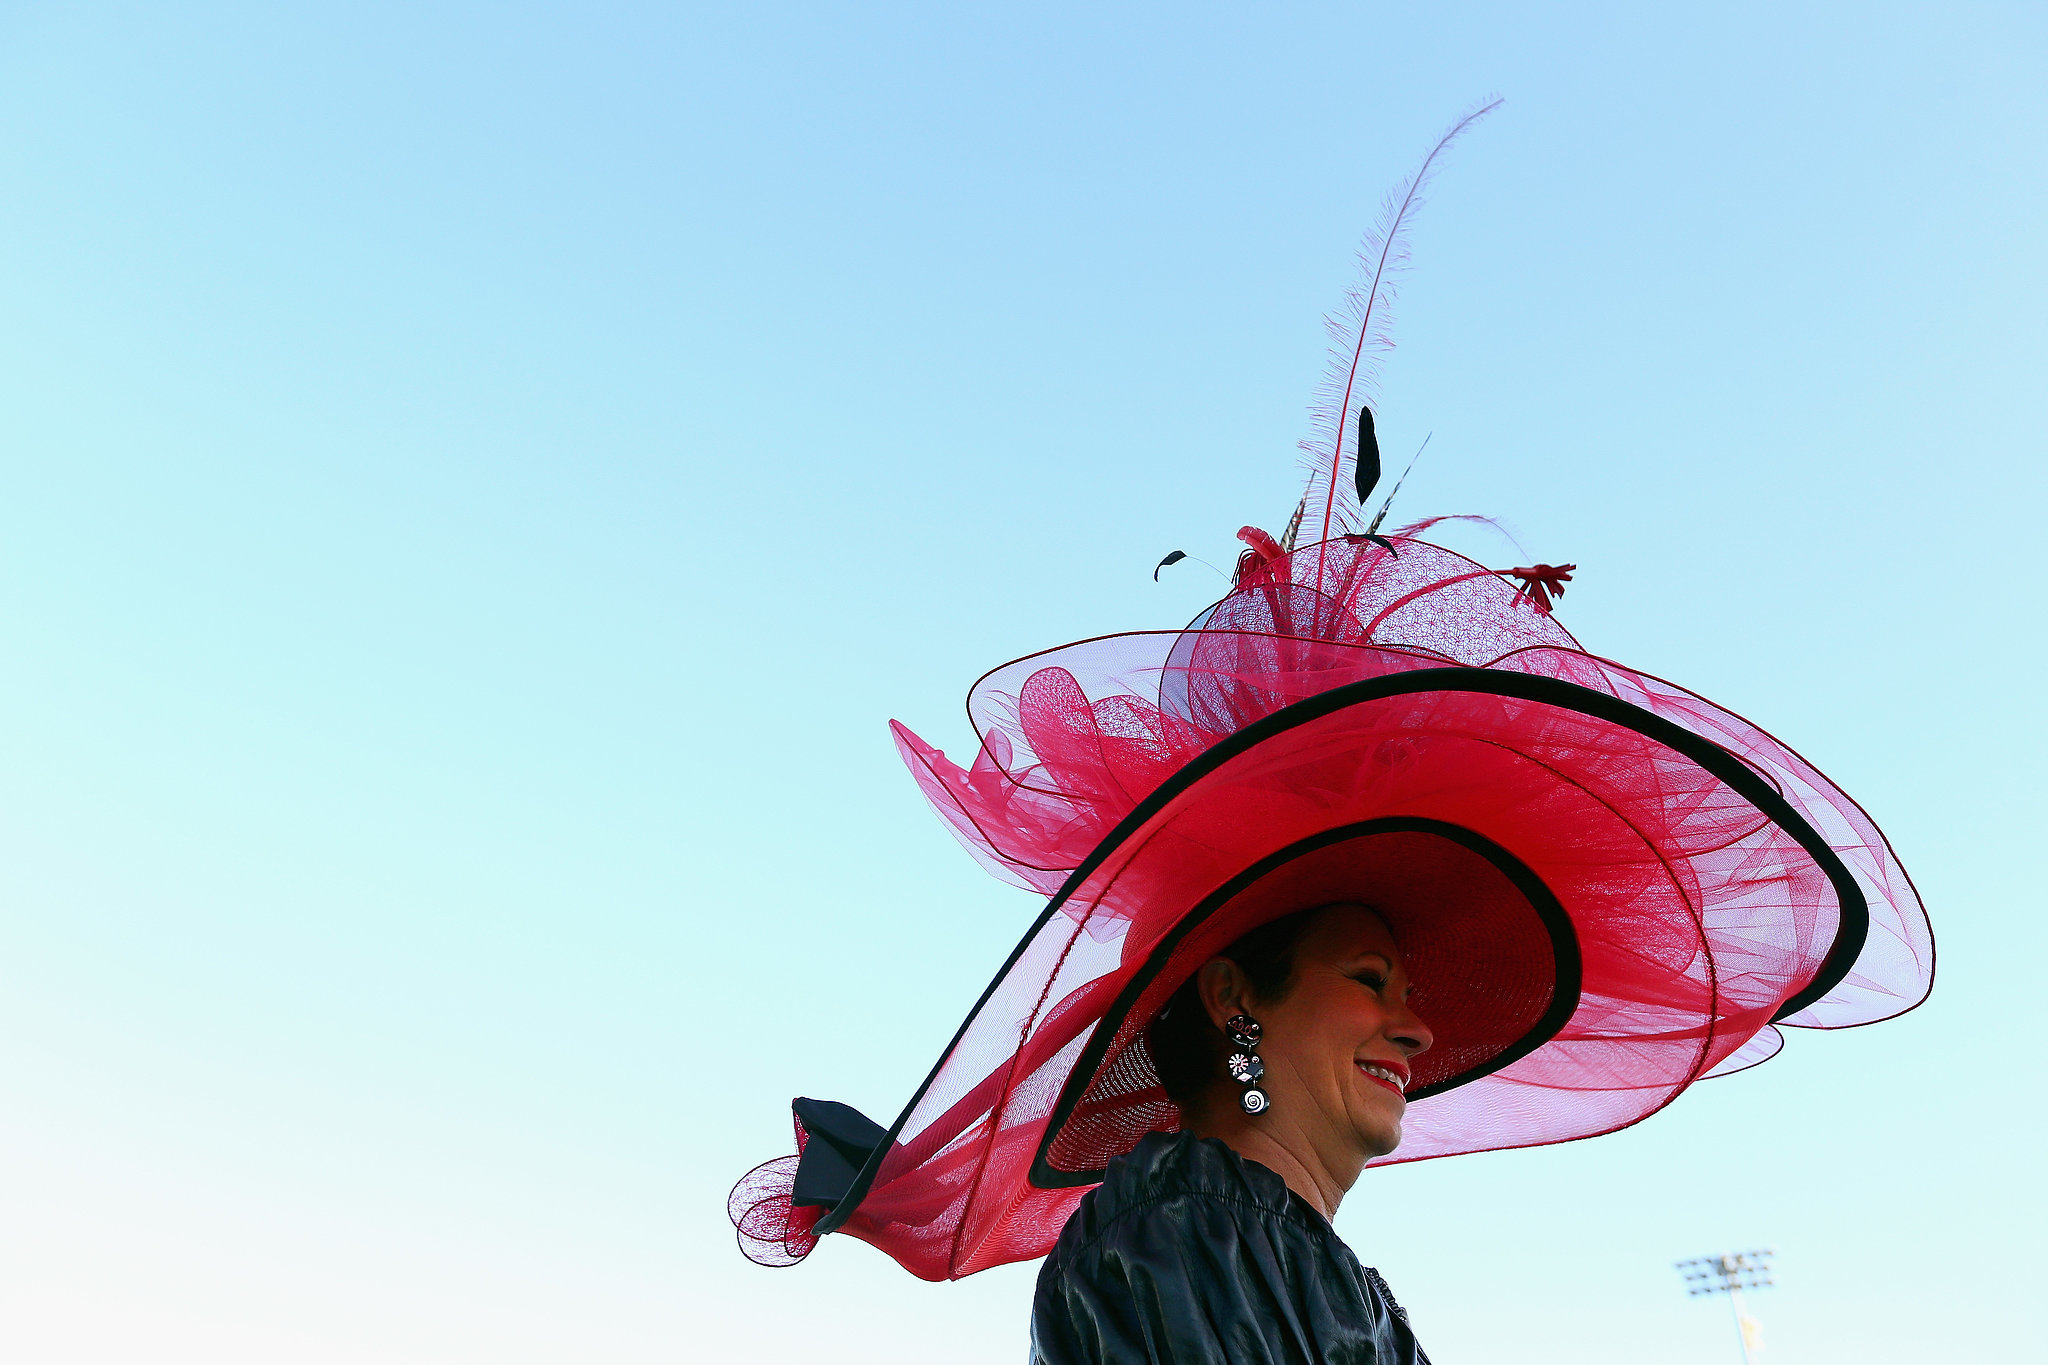 It was a go big or go home hat for this woman in 2014.